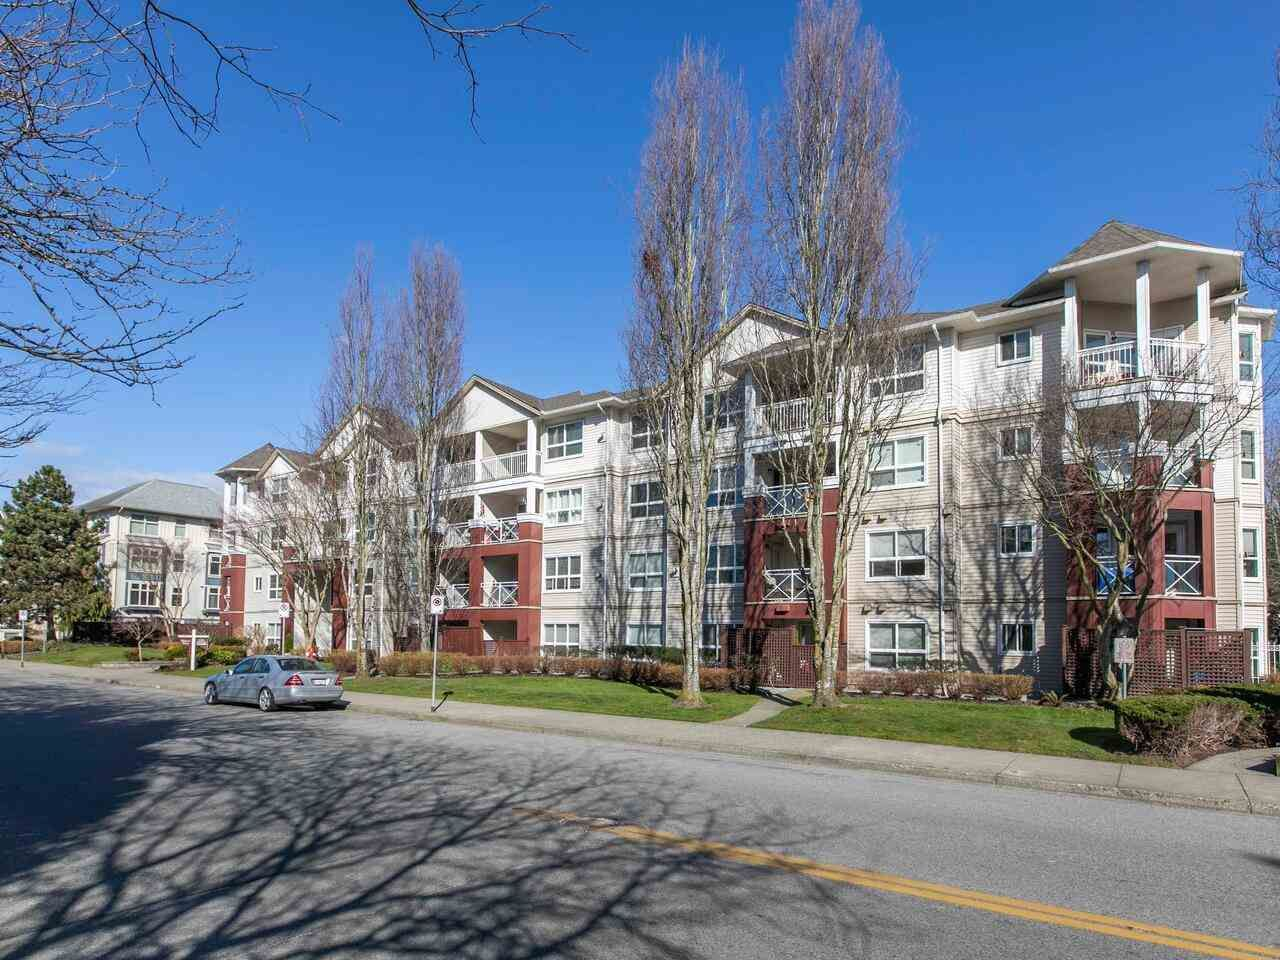 """Main Photo: 112 8068 120A Street in Surrey: Queen Mary Park Surrey Condo for sale in """"Melrose Place"""" : MLS®# R2552952"""